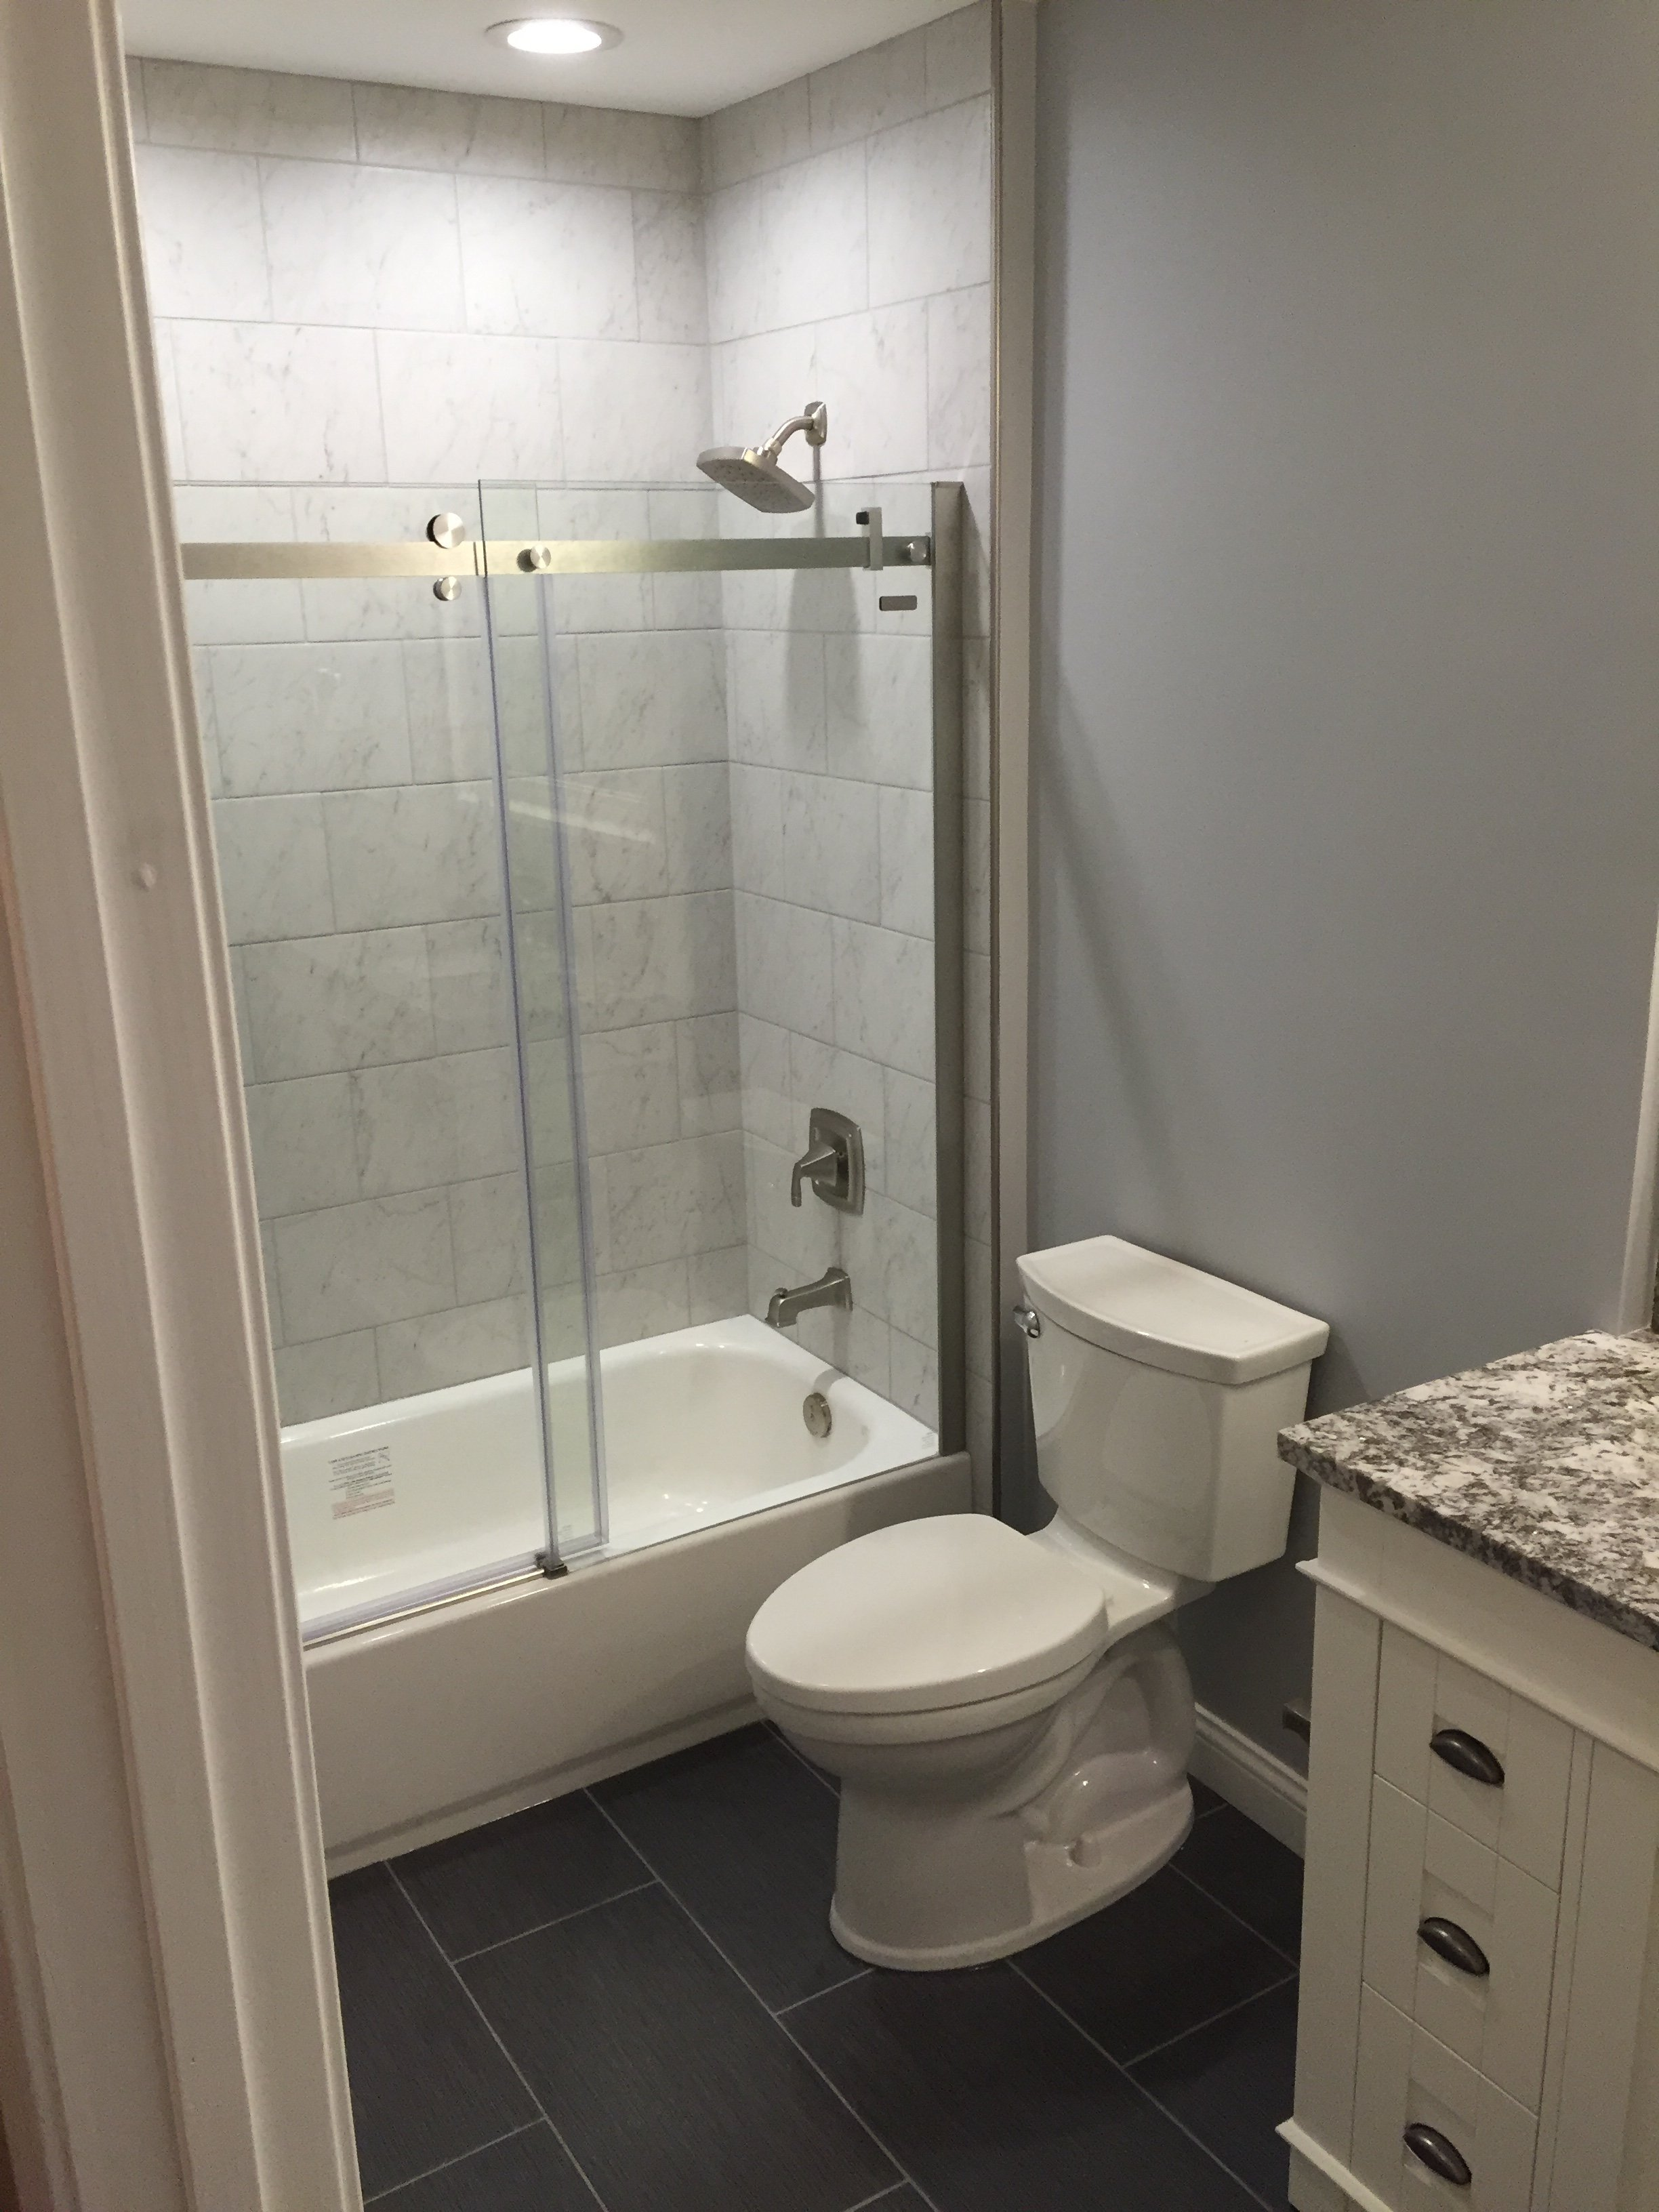 3.Surface Specialists Bathroom.Remodel